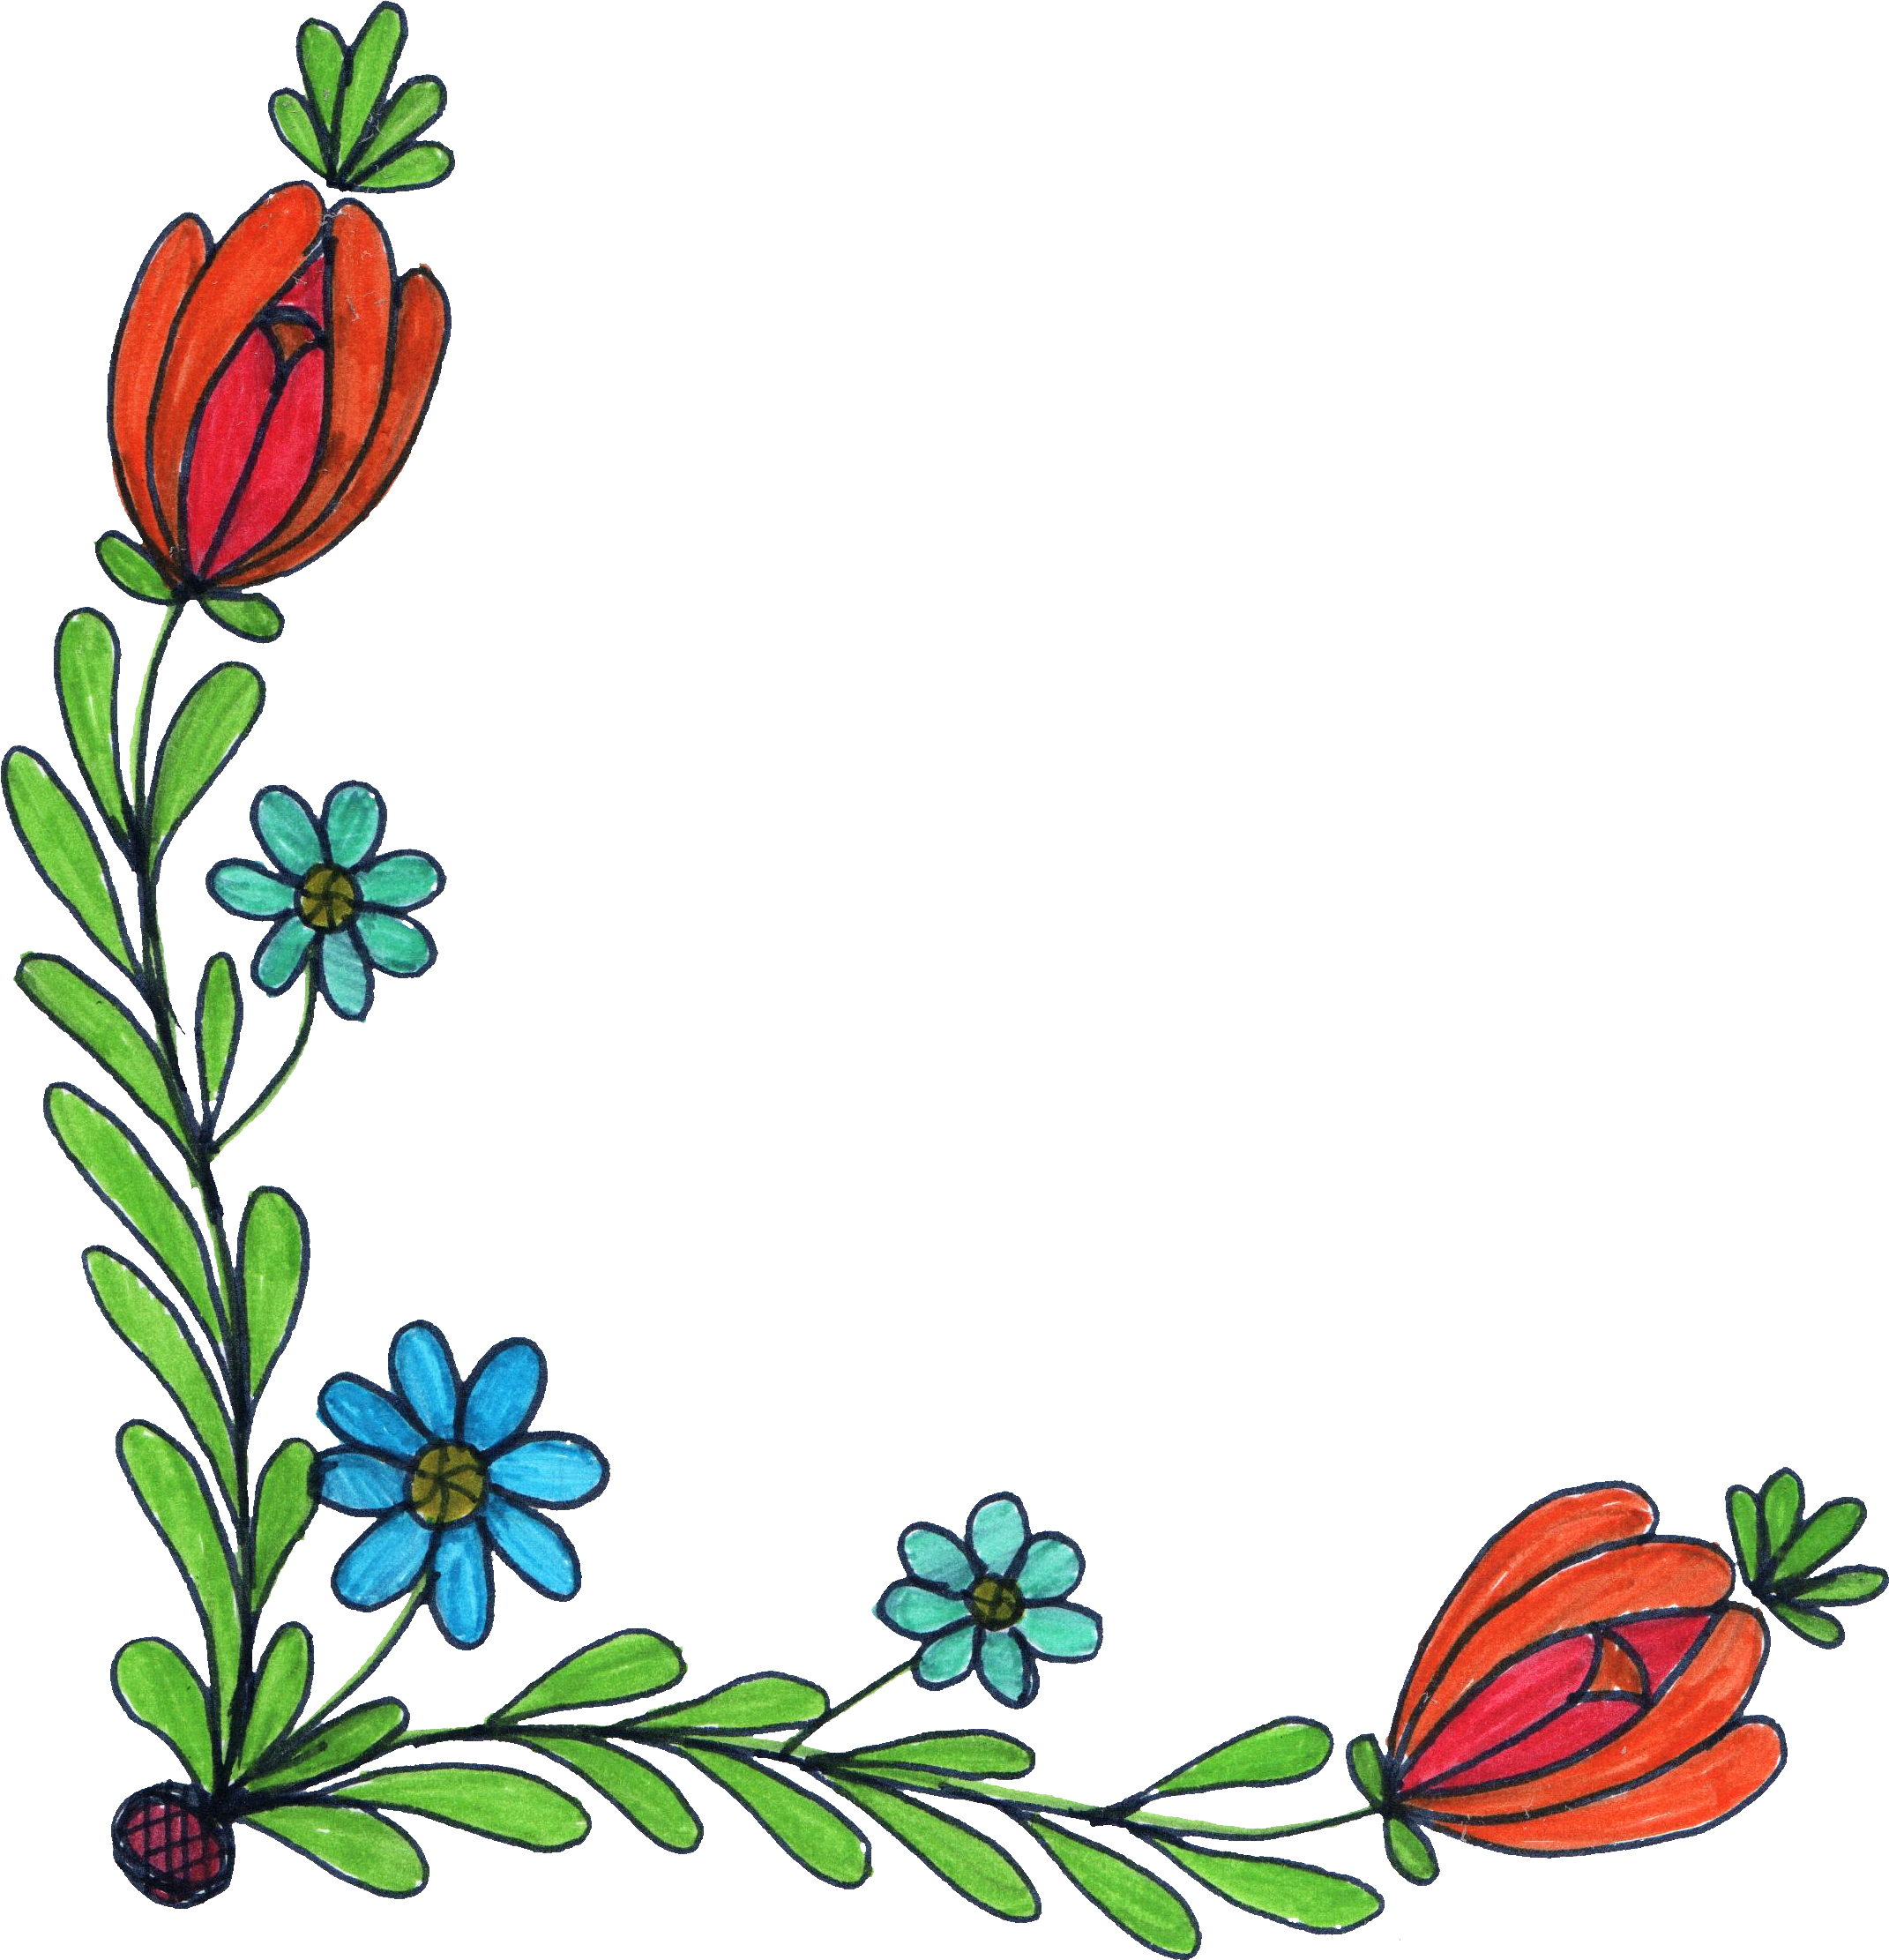 Flower drawing png. Corner transparent onlygfx